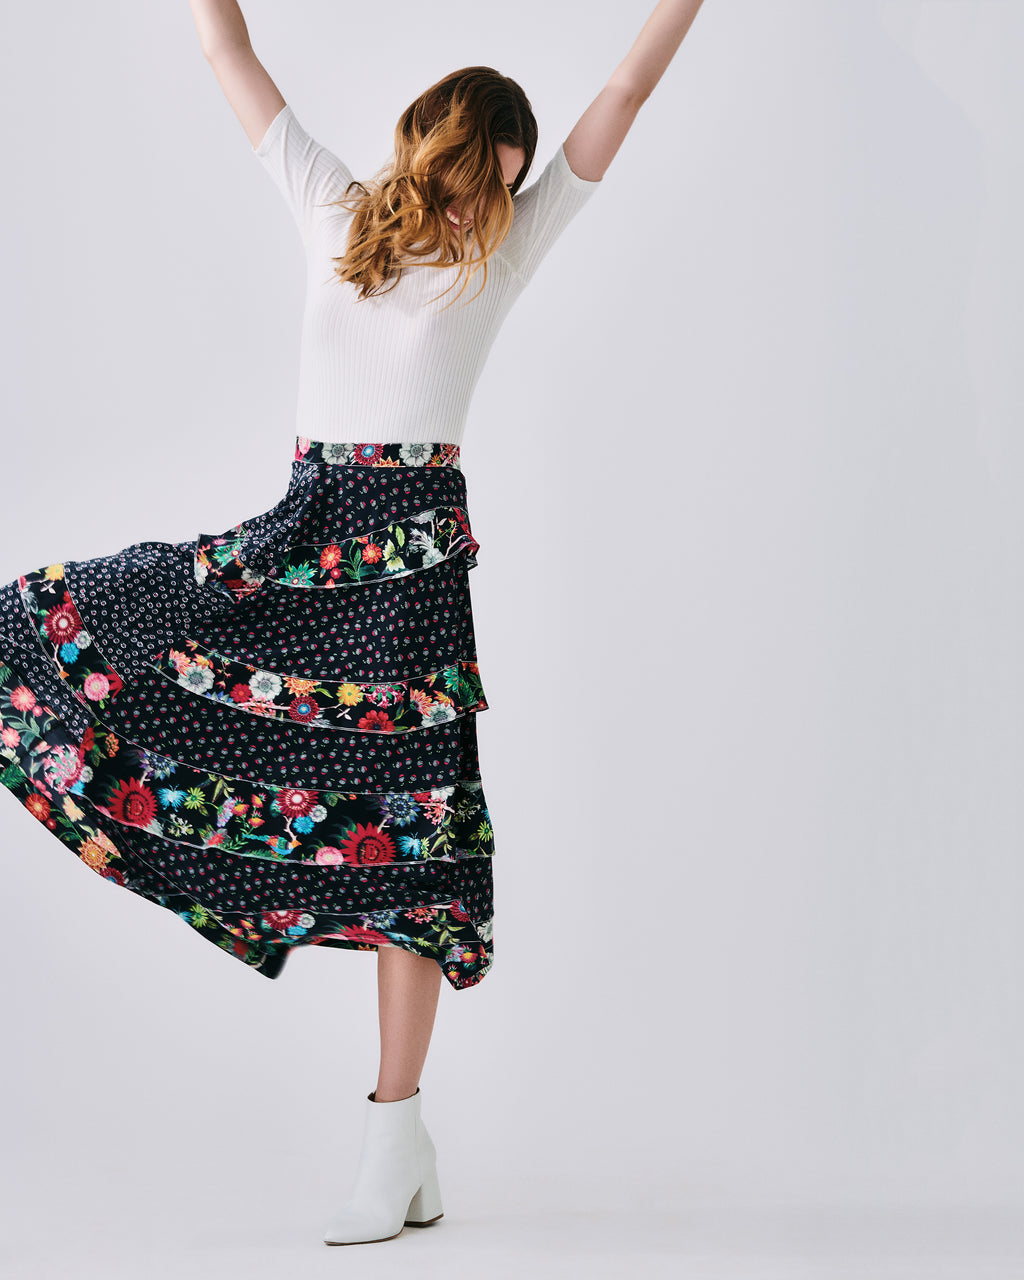 CF10236 - DITZY DANDELION MAXI SKIRT - bottoms - skirts - In a mix of floral prints, this maxi skirt features tiered ruffled and an asymmetrical hemline. Finished with a concealed zipper for closure and unlined. Can be worn with zipper in the back or side.�